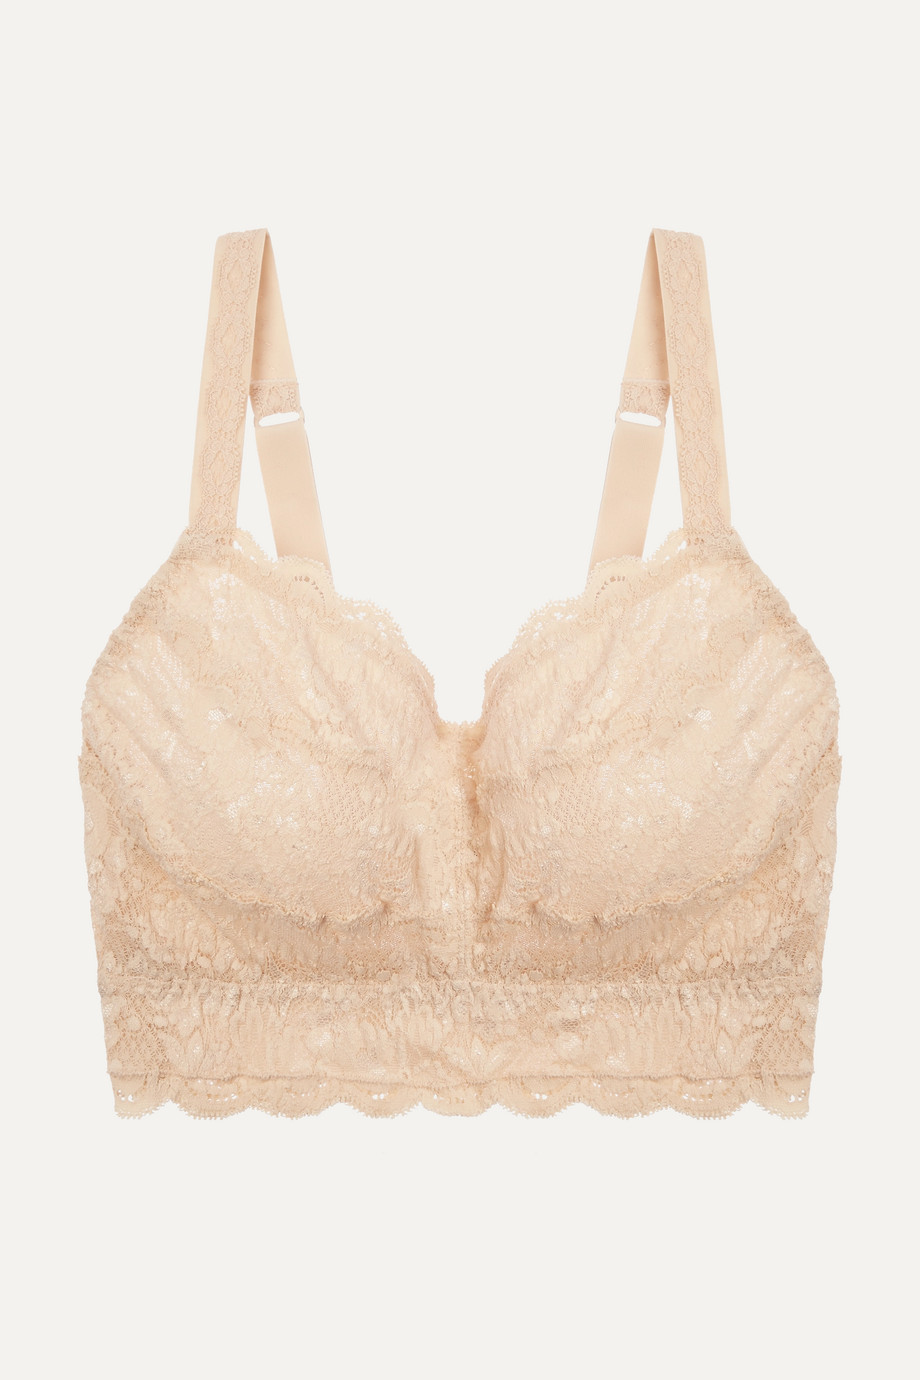 Cosabella Never Say Never Curvy Sweetie DD-F stretch-lace soft-cup bra